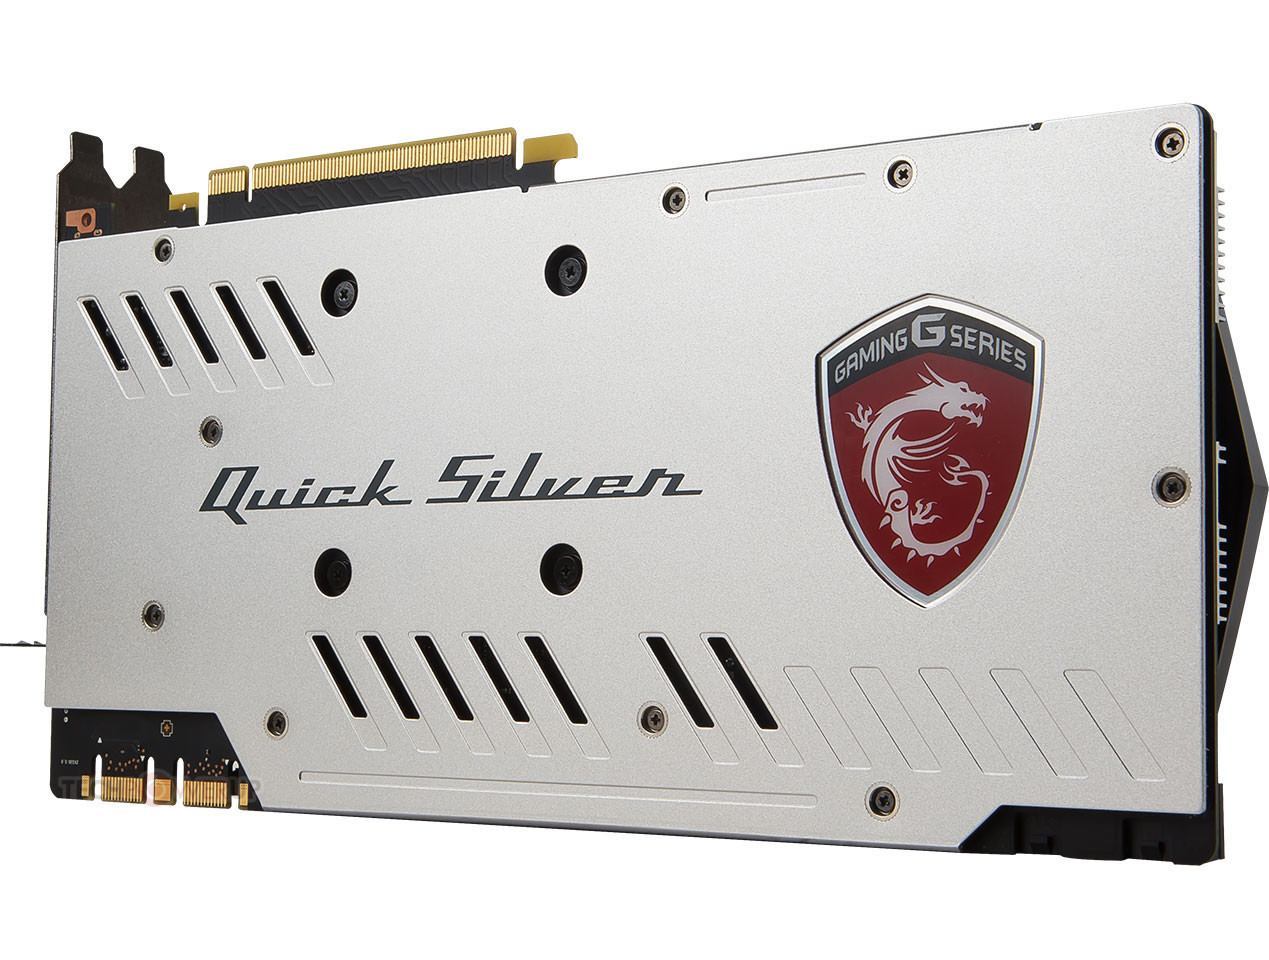 MSI announced their new GTX 1070 Quick Silver GPU